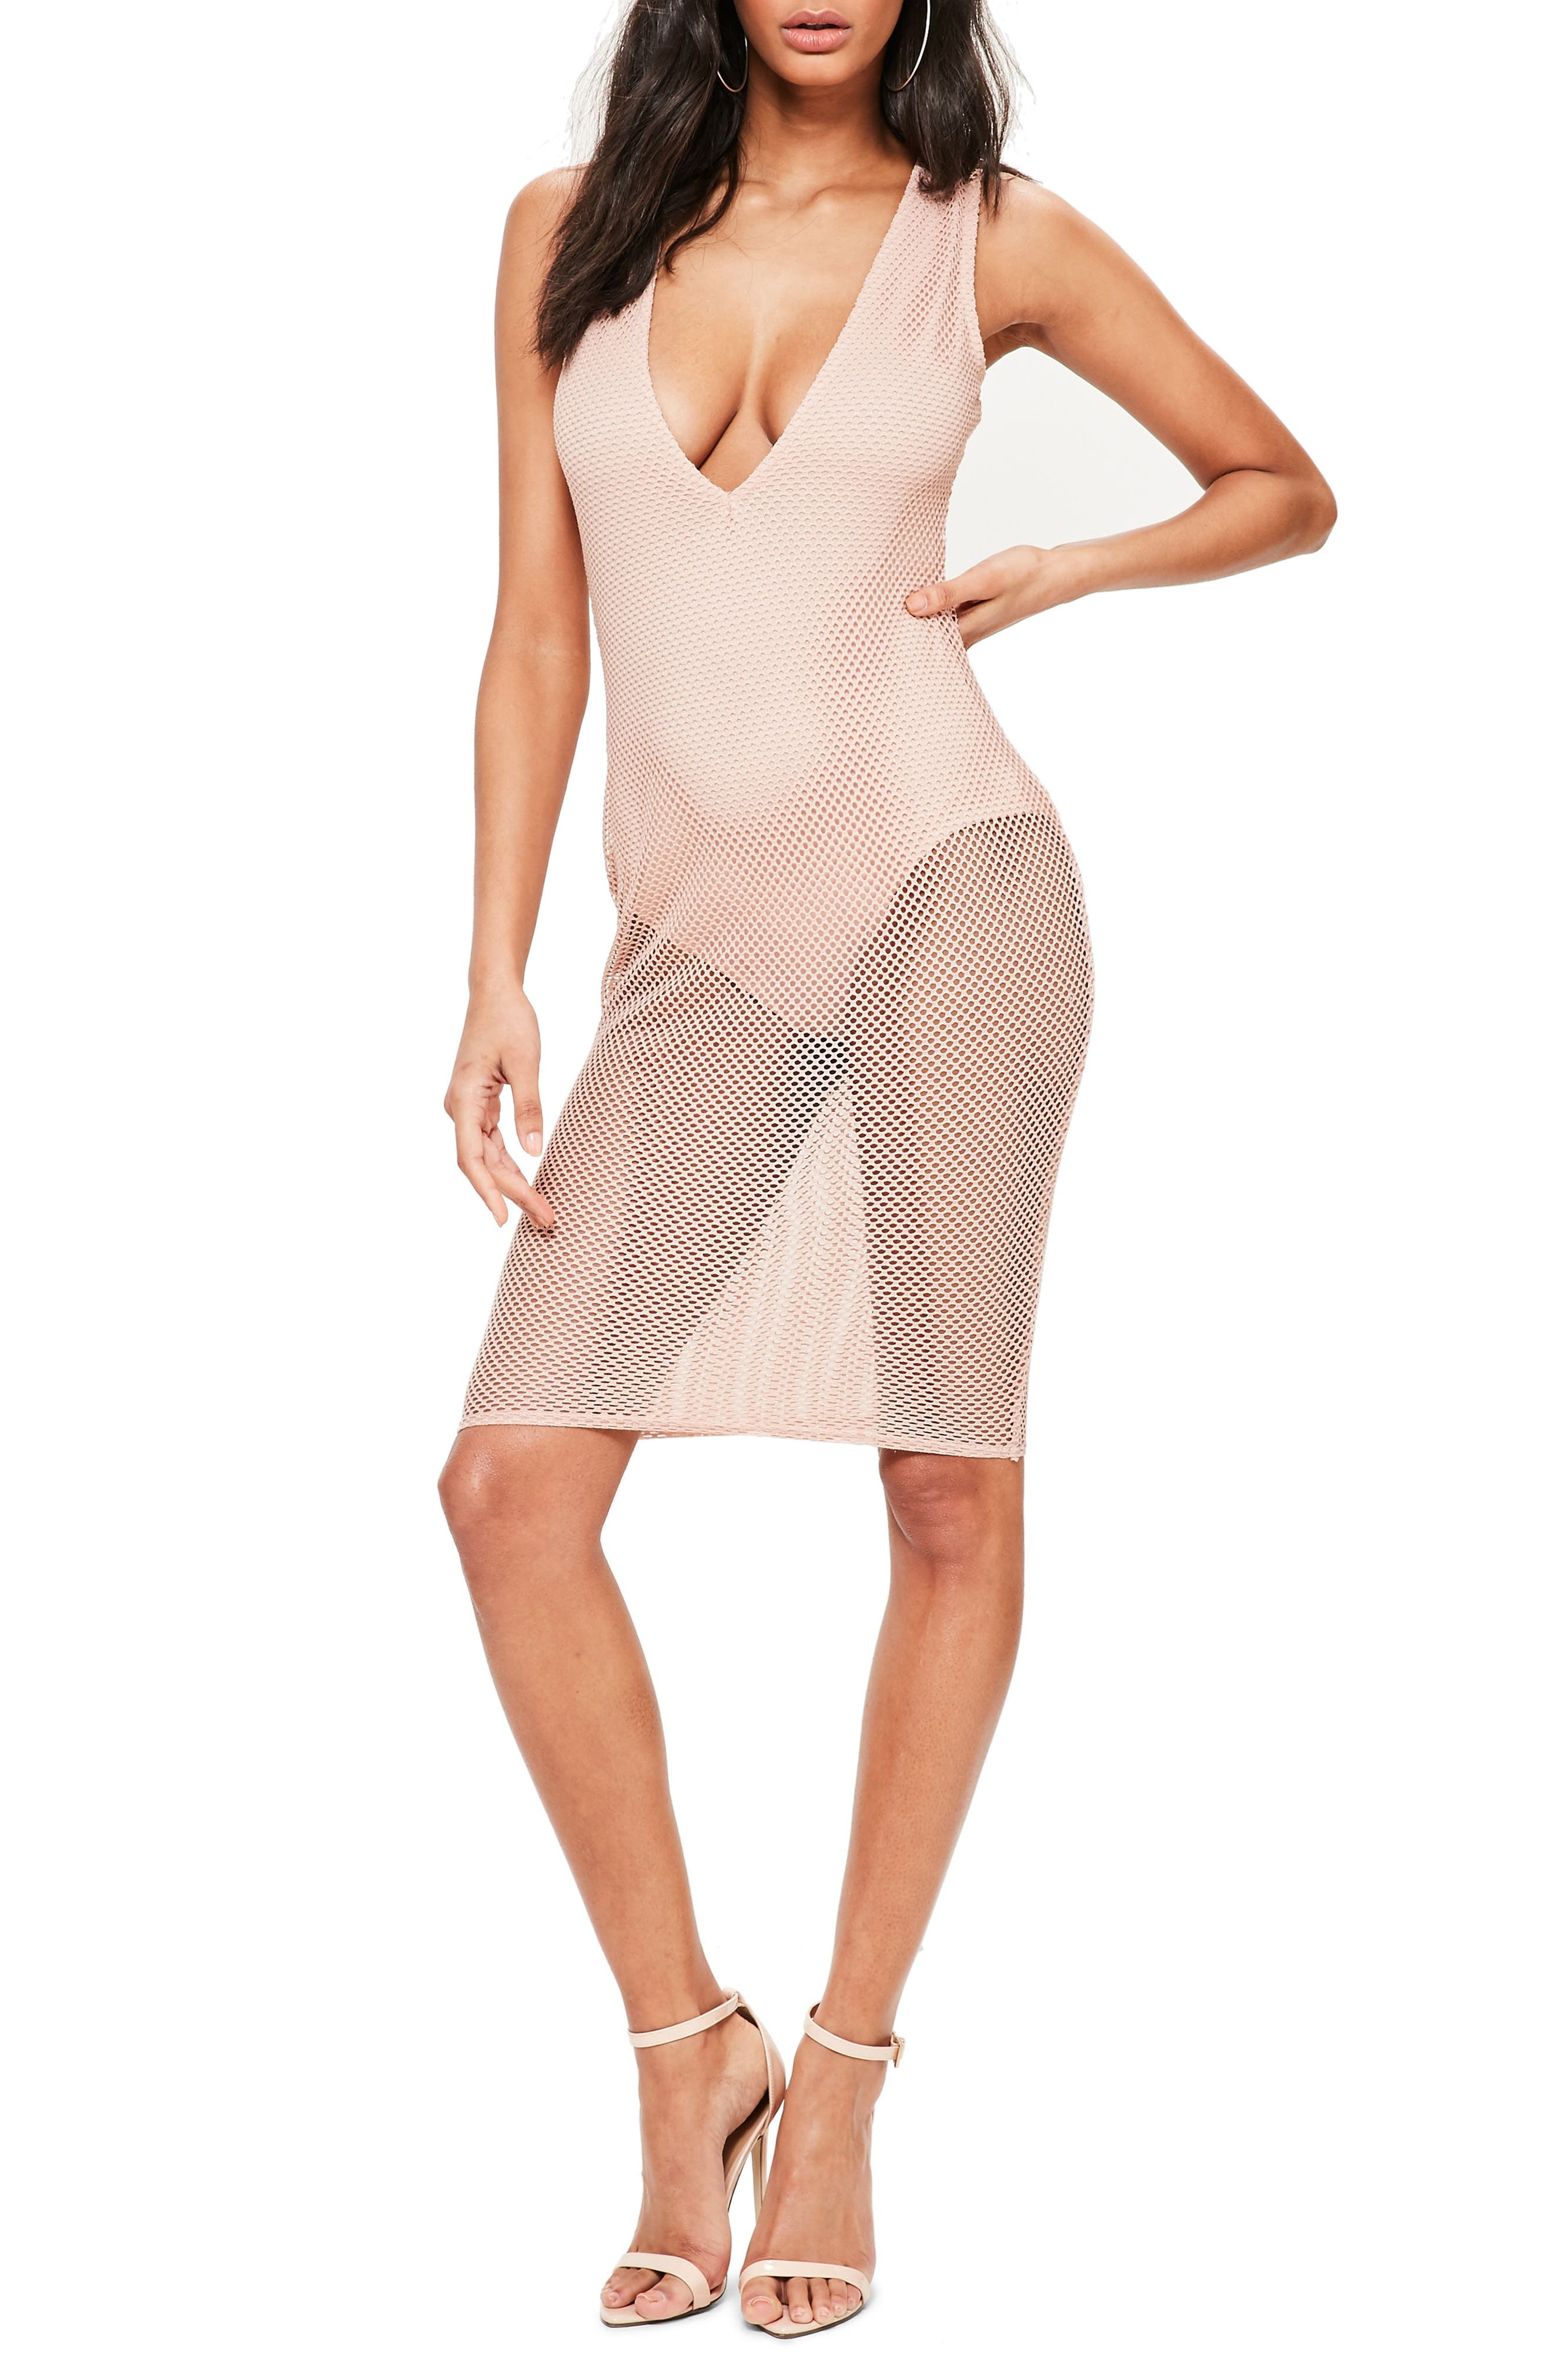 Alternate Image 1 Selected - Missguided Fishnet Sleeveless Dress